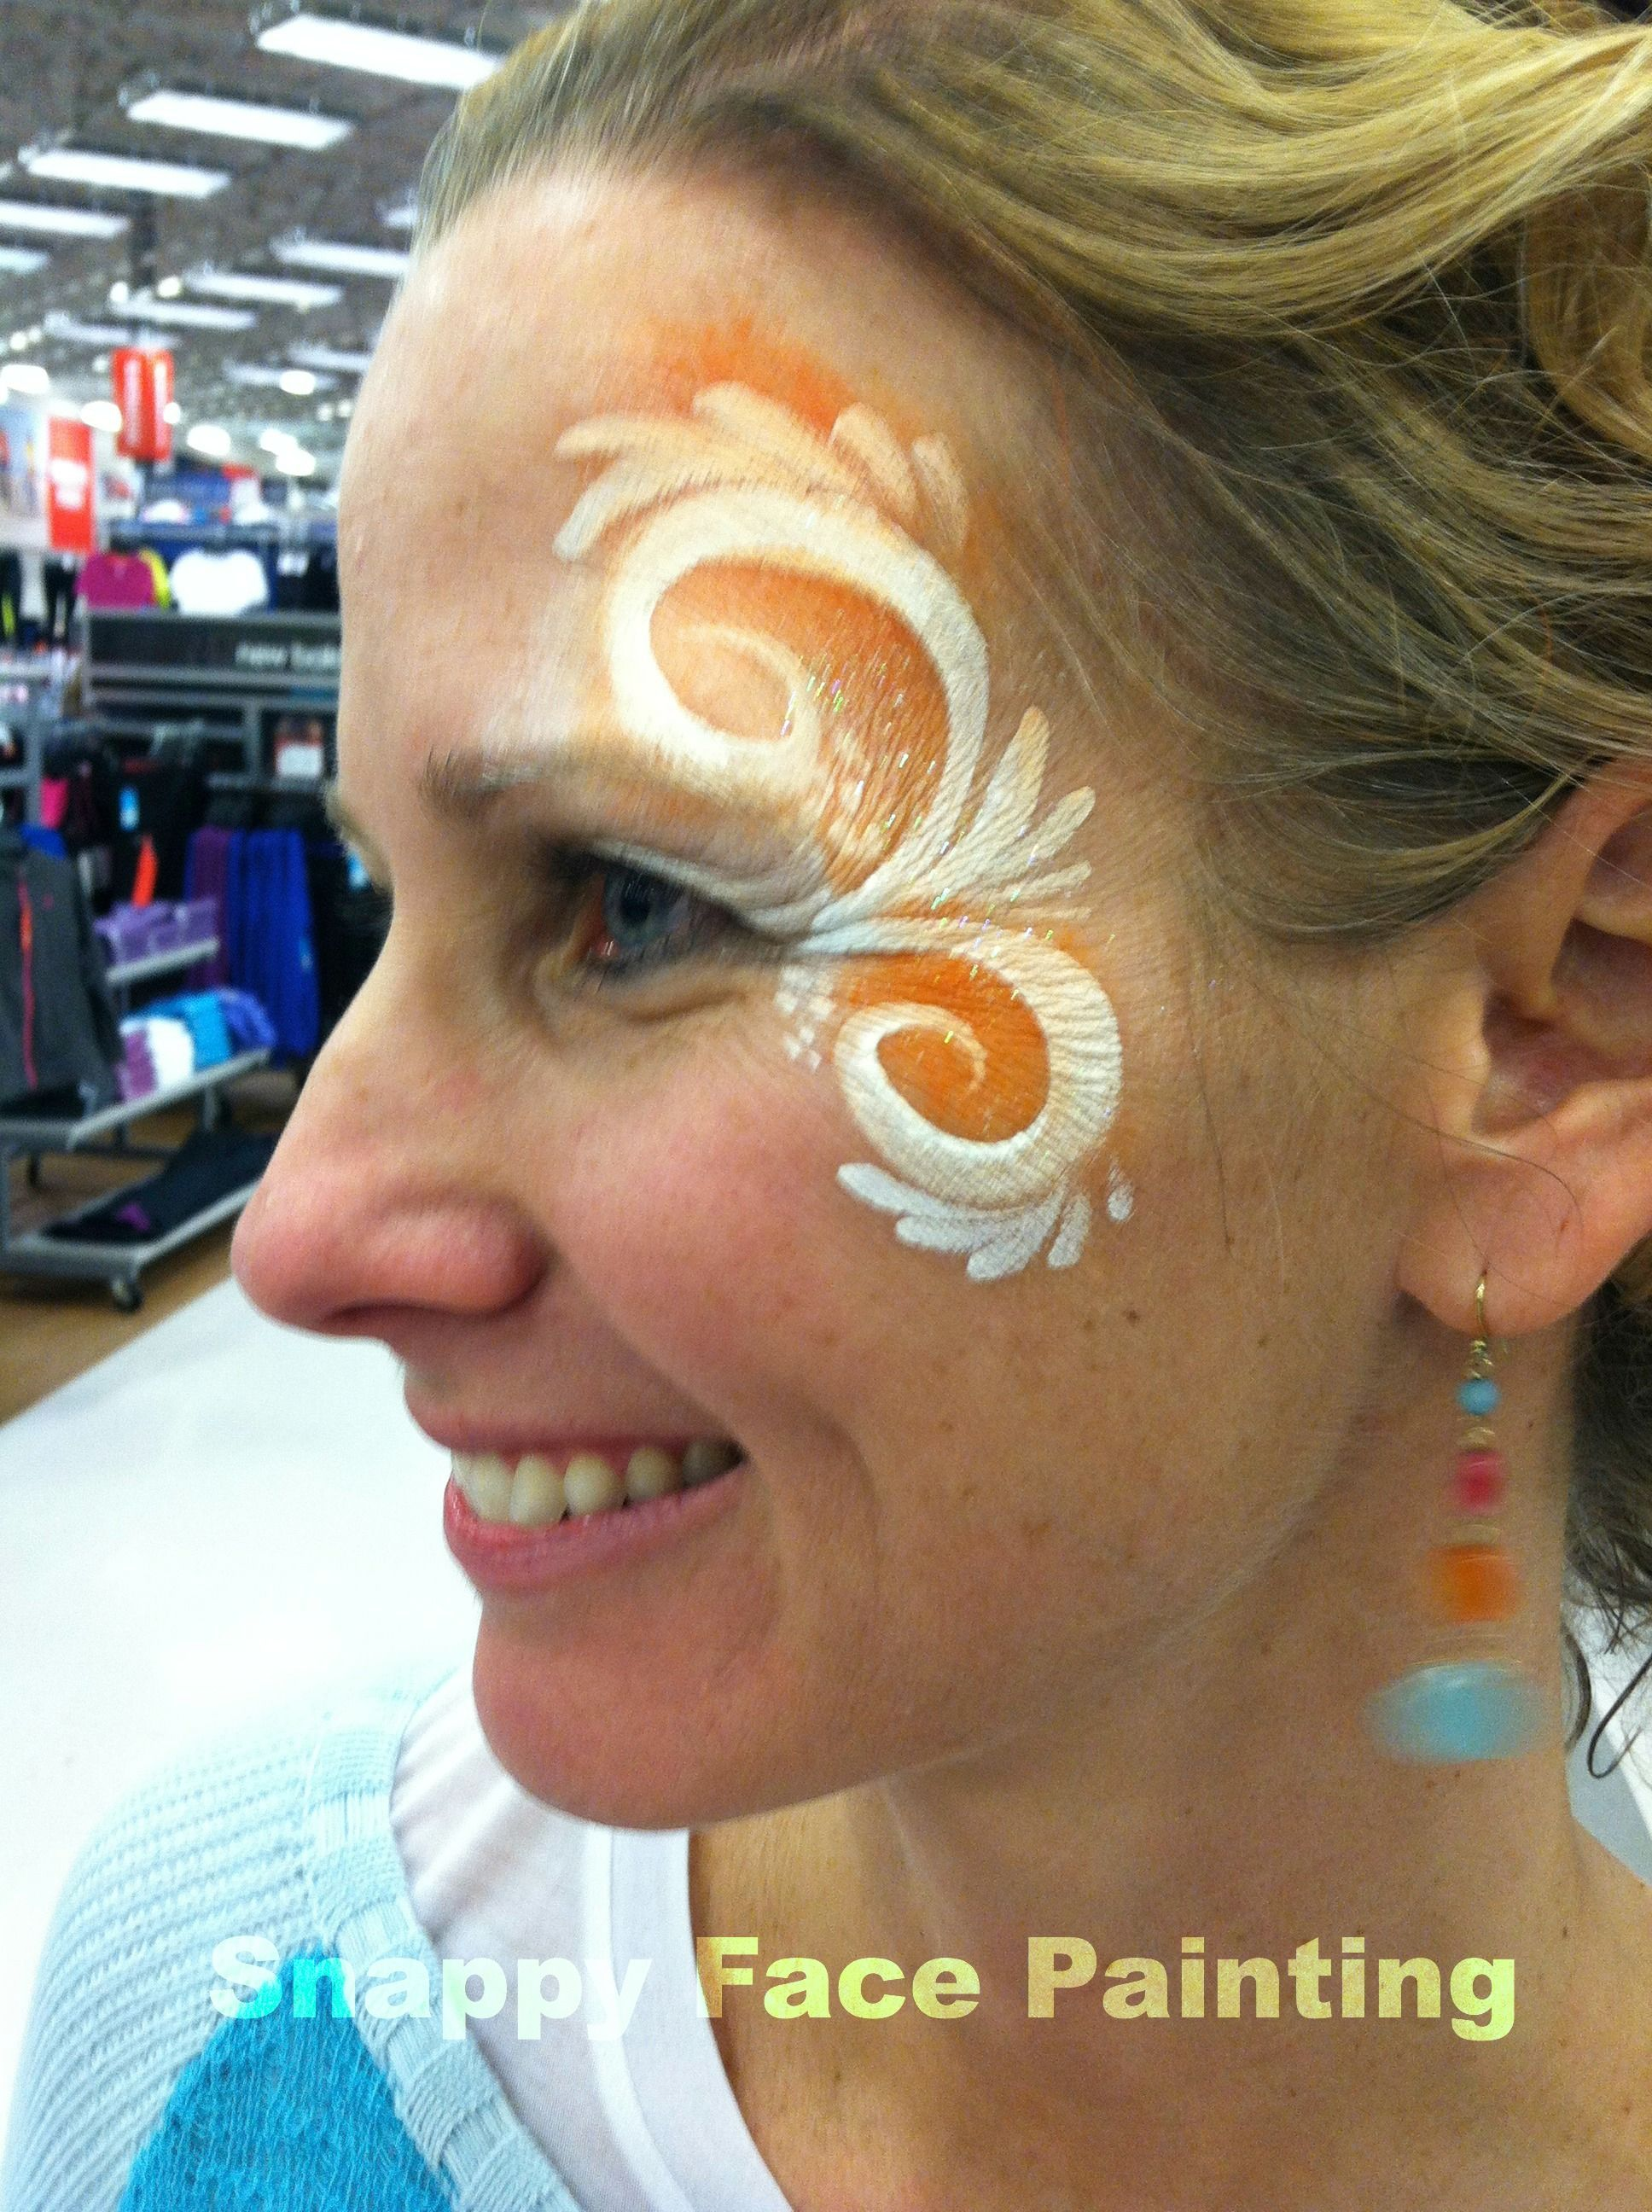 Fancy Swirls For Girls With Orange And White Face Paint To